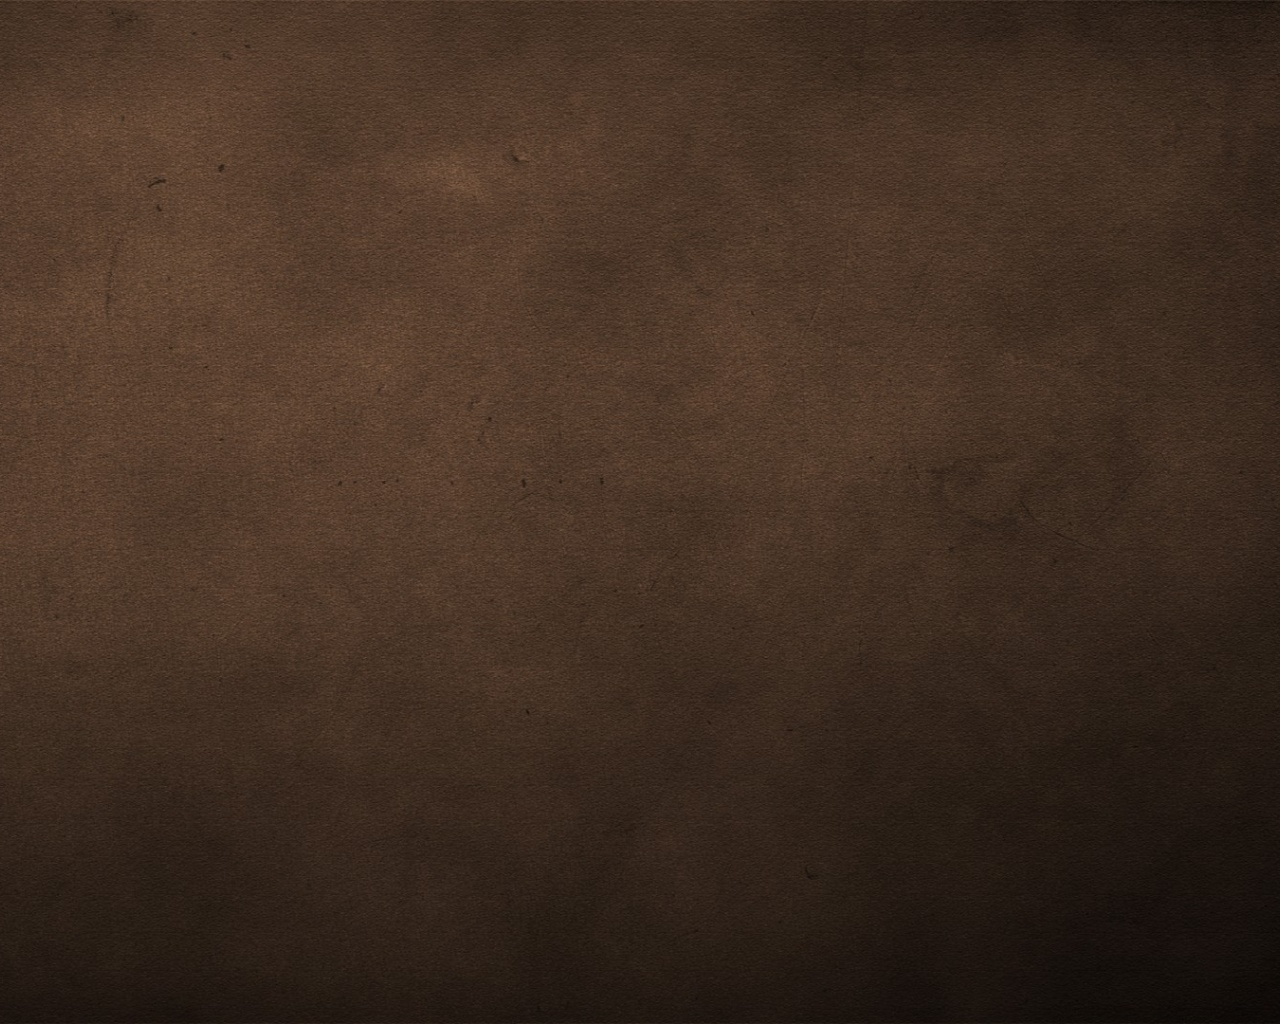 1280x1024 Brown Texture Desktop PC And Mac Wallpaper